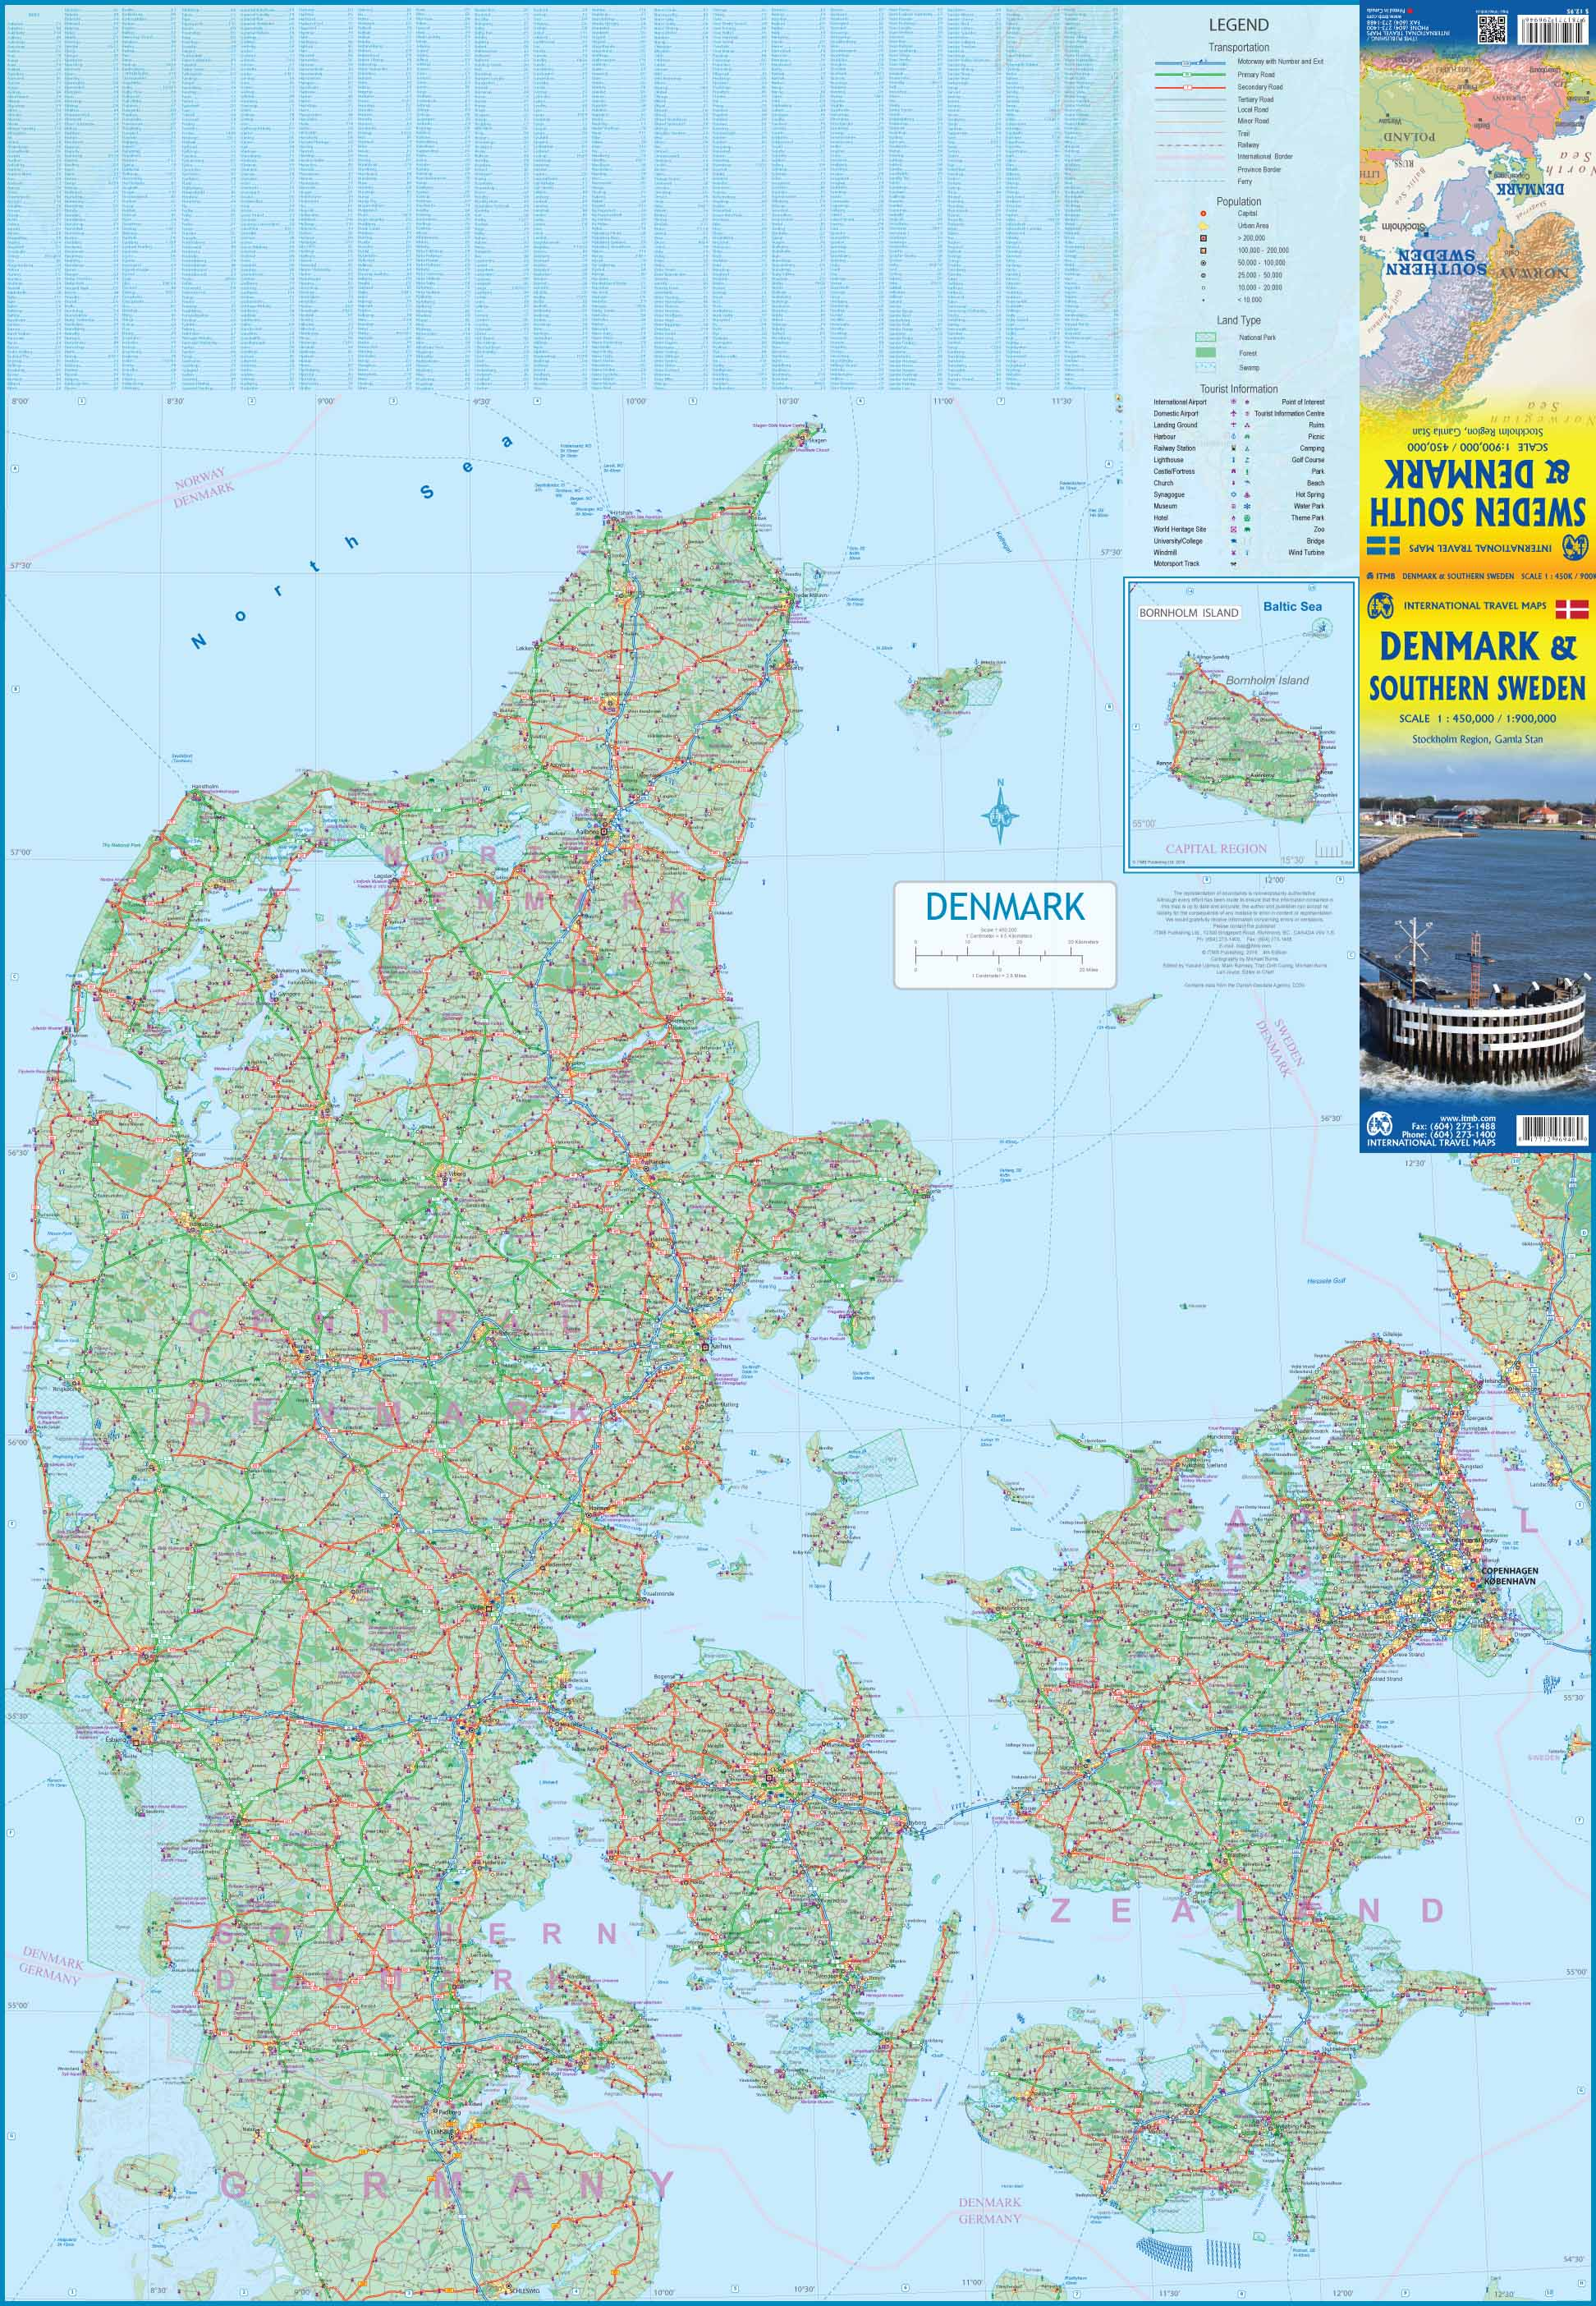 Denmark Topographic Map.Maps For Travel City Maps Road Maps Guides Globes Topographic Maps